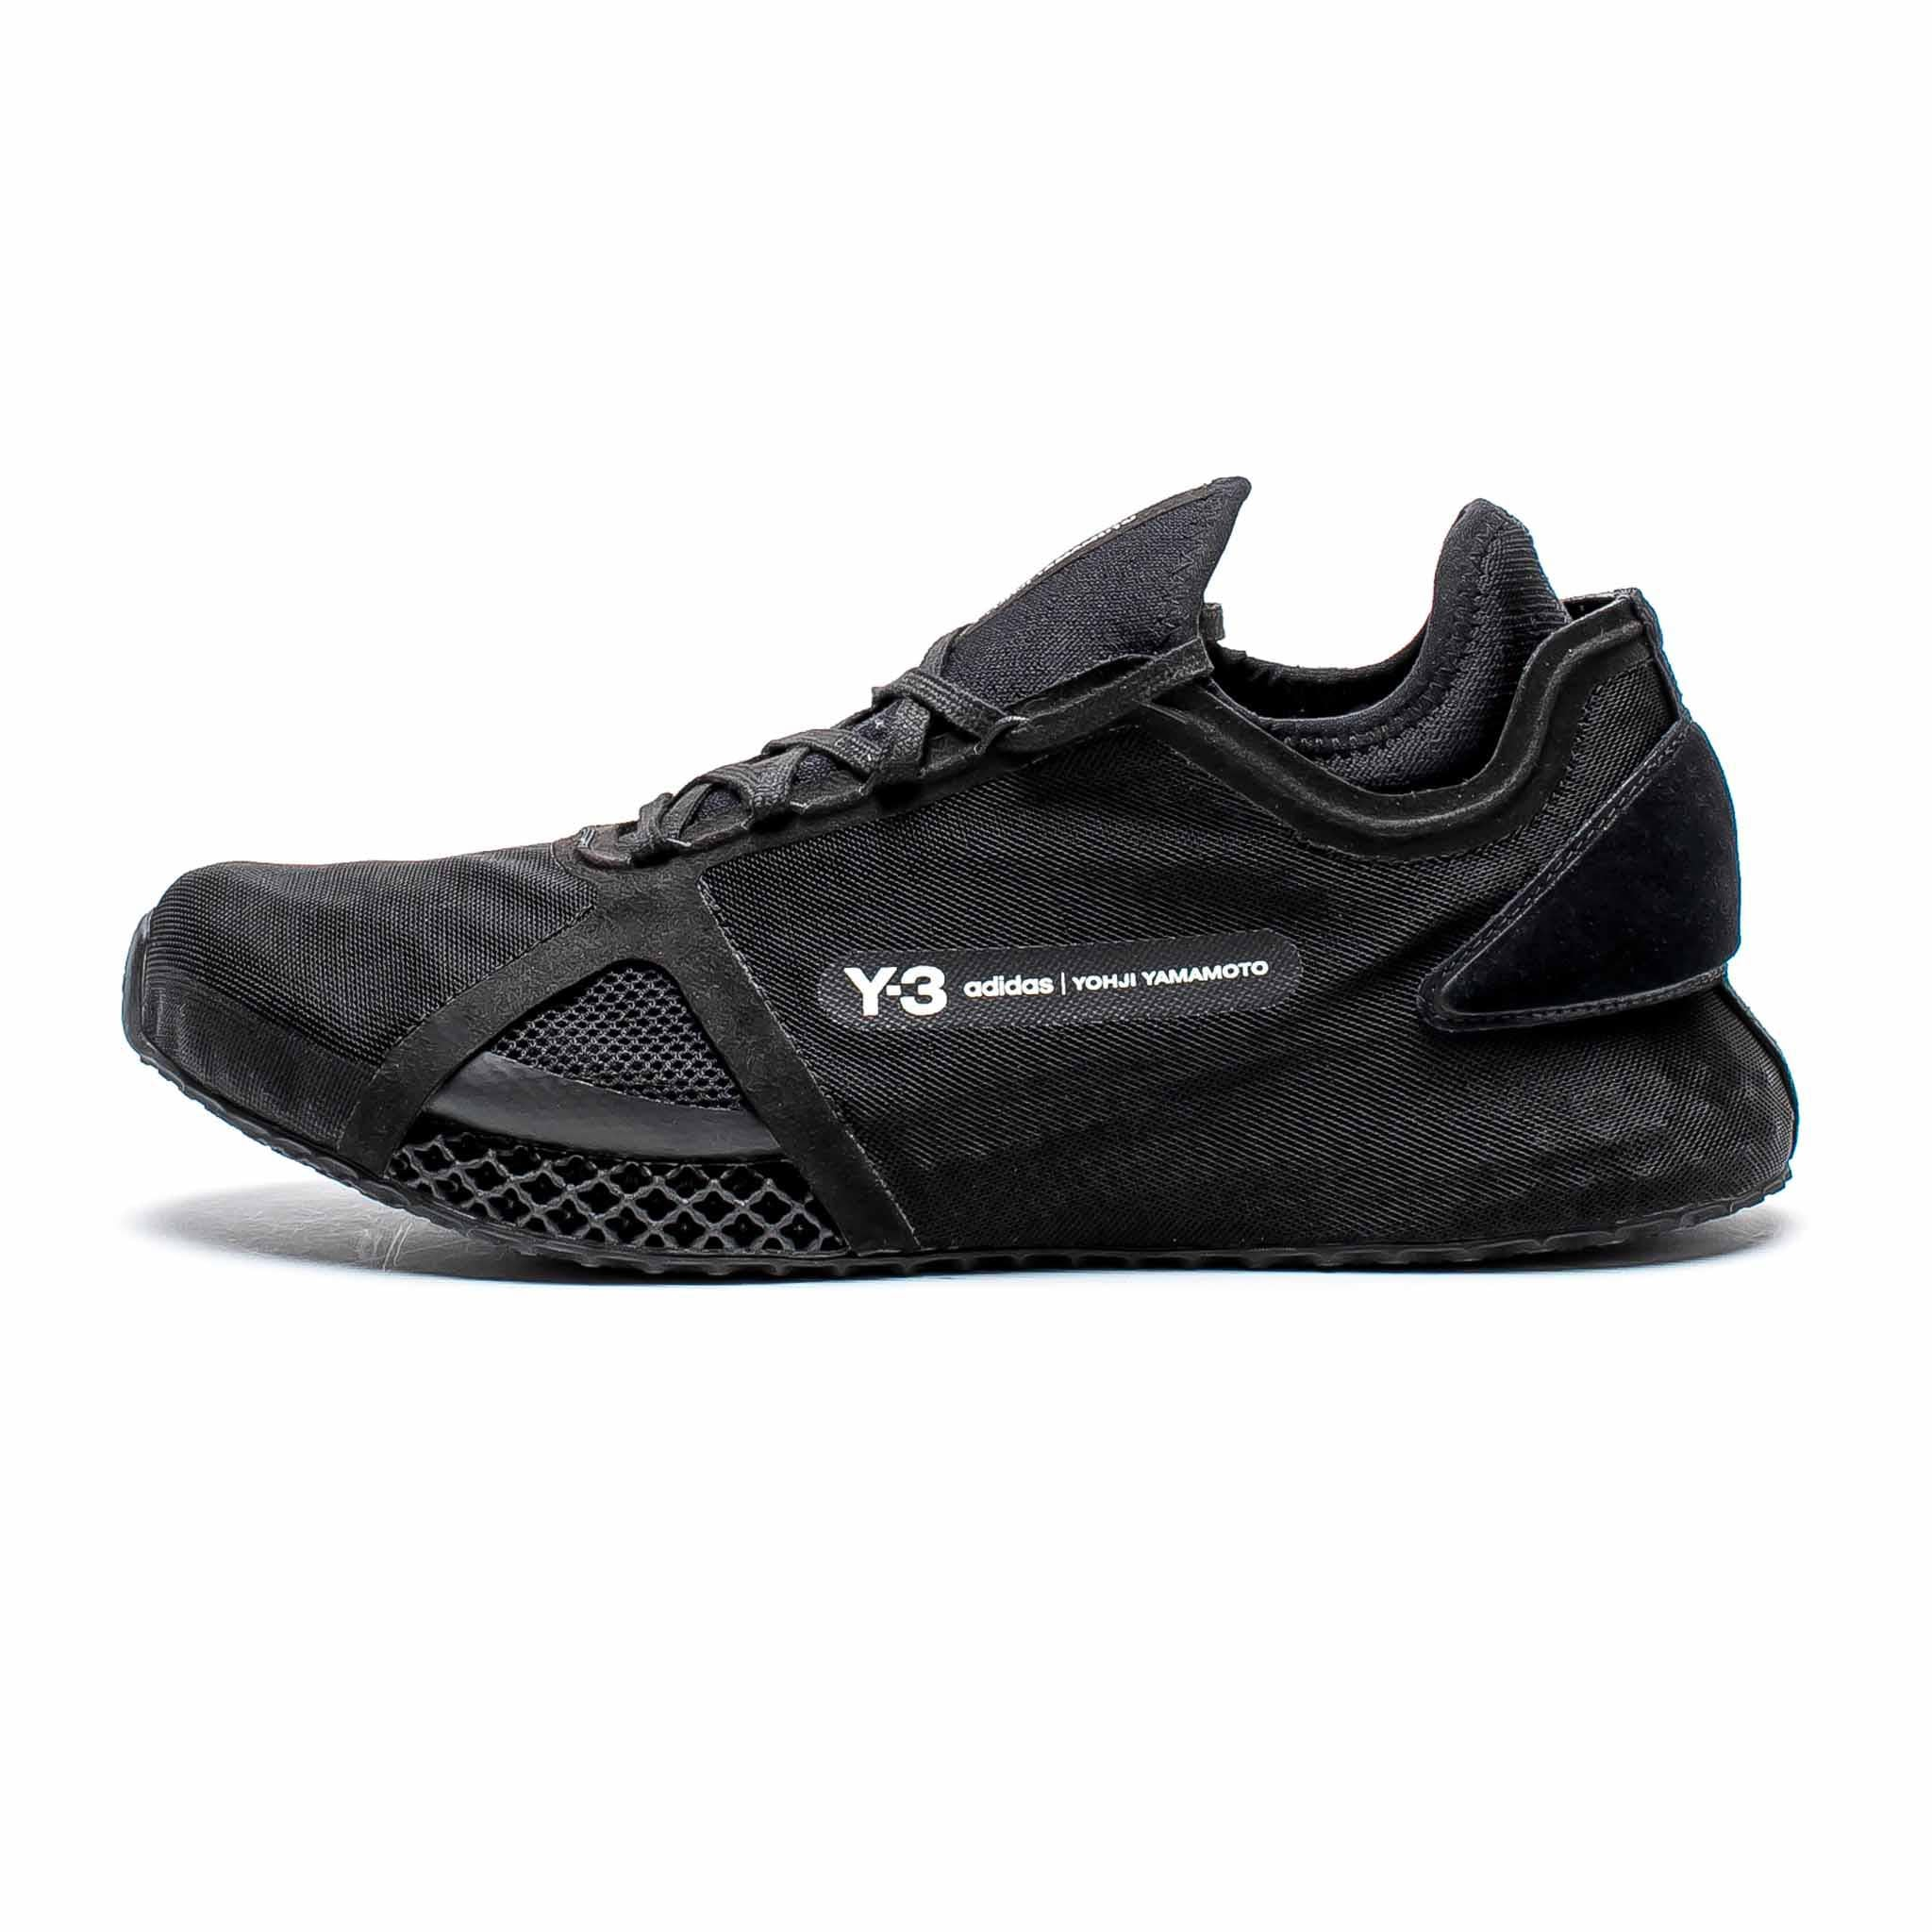 ADIDAS Y-3 Runner 4D IO Triple Black